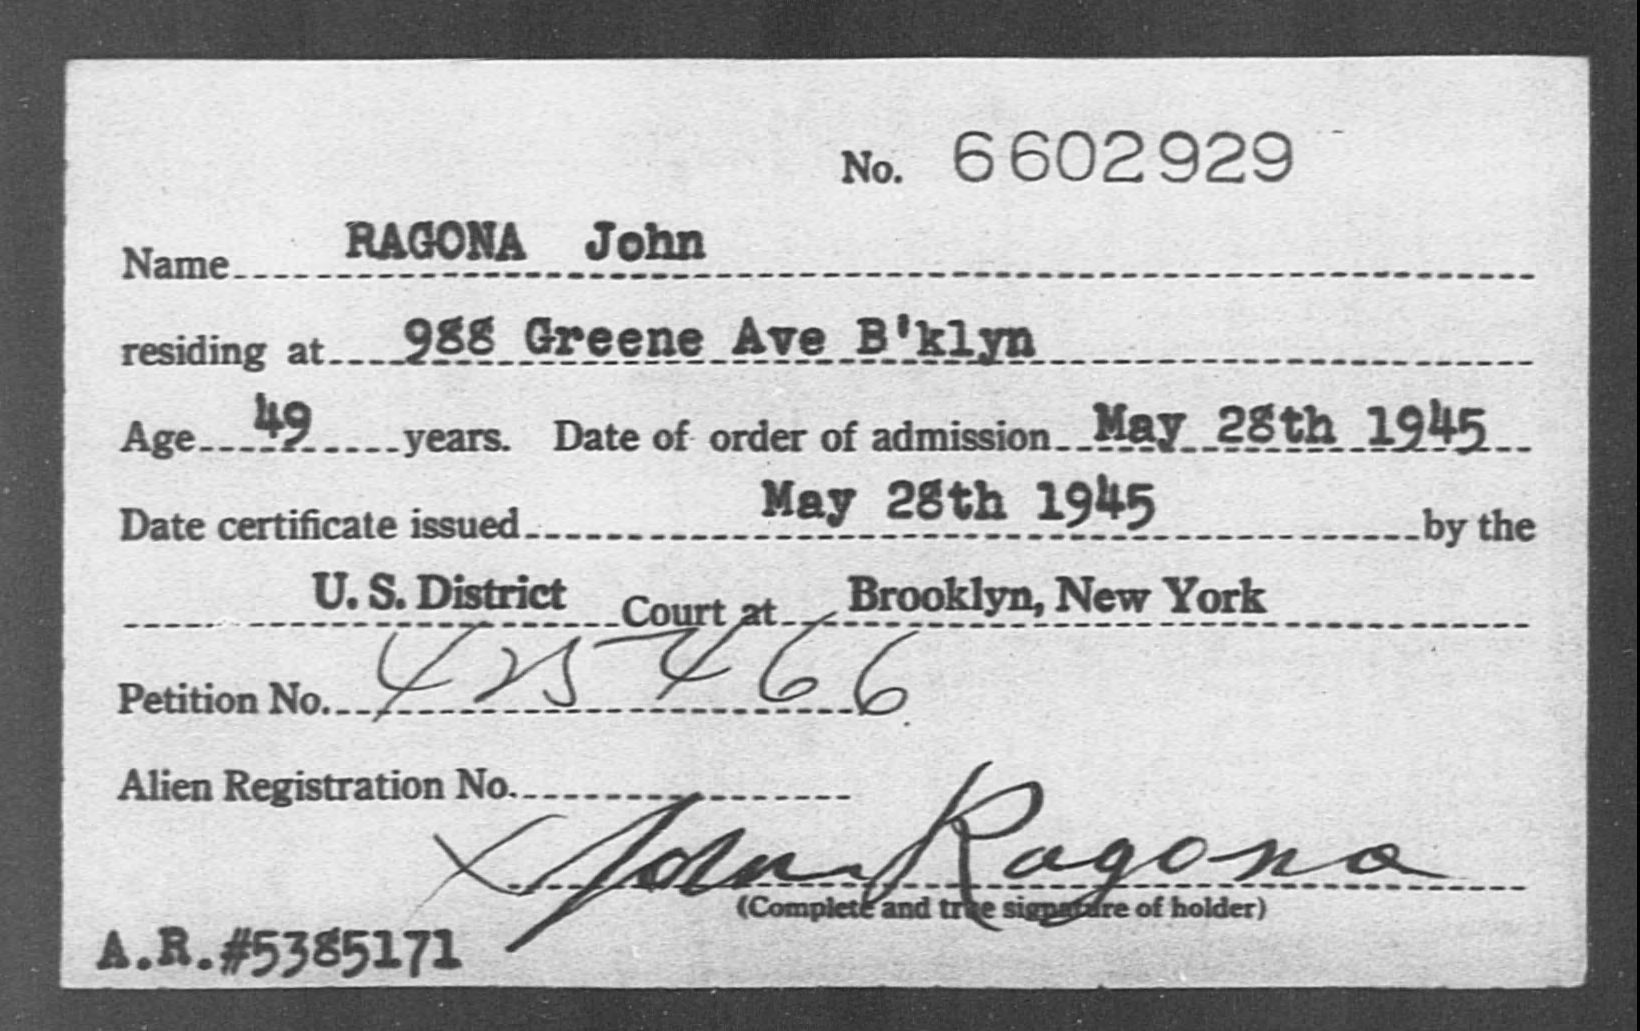 RAGONA John - Born: [BLANK], Naturalized: 1945